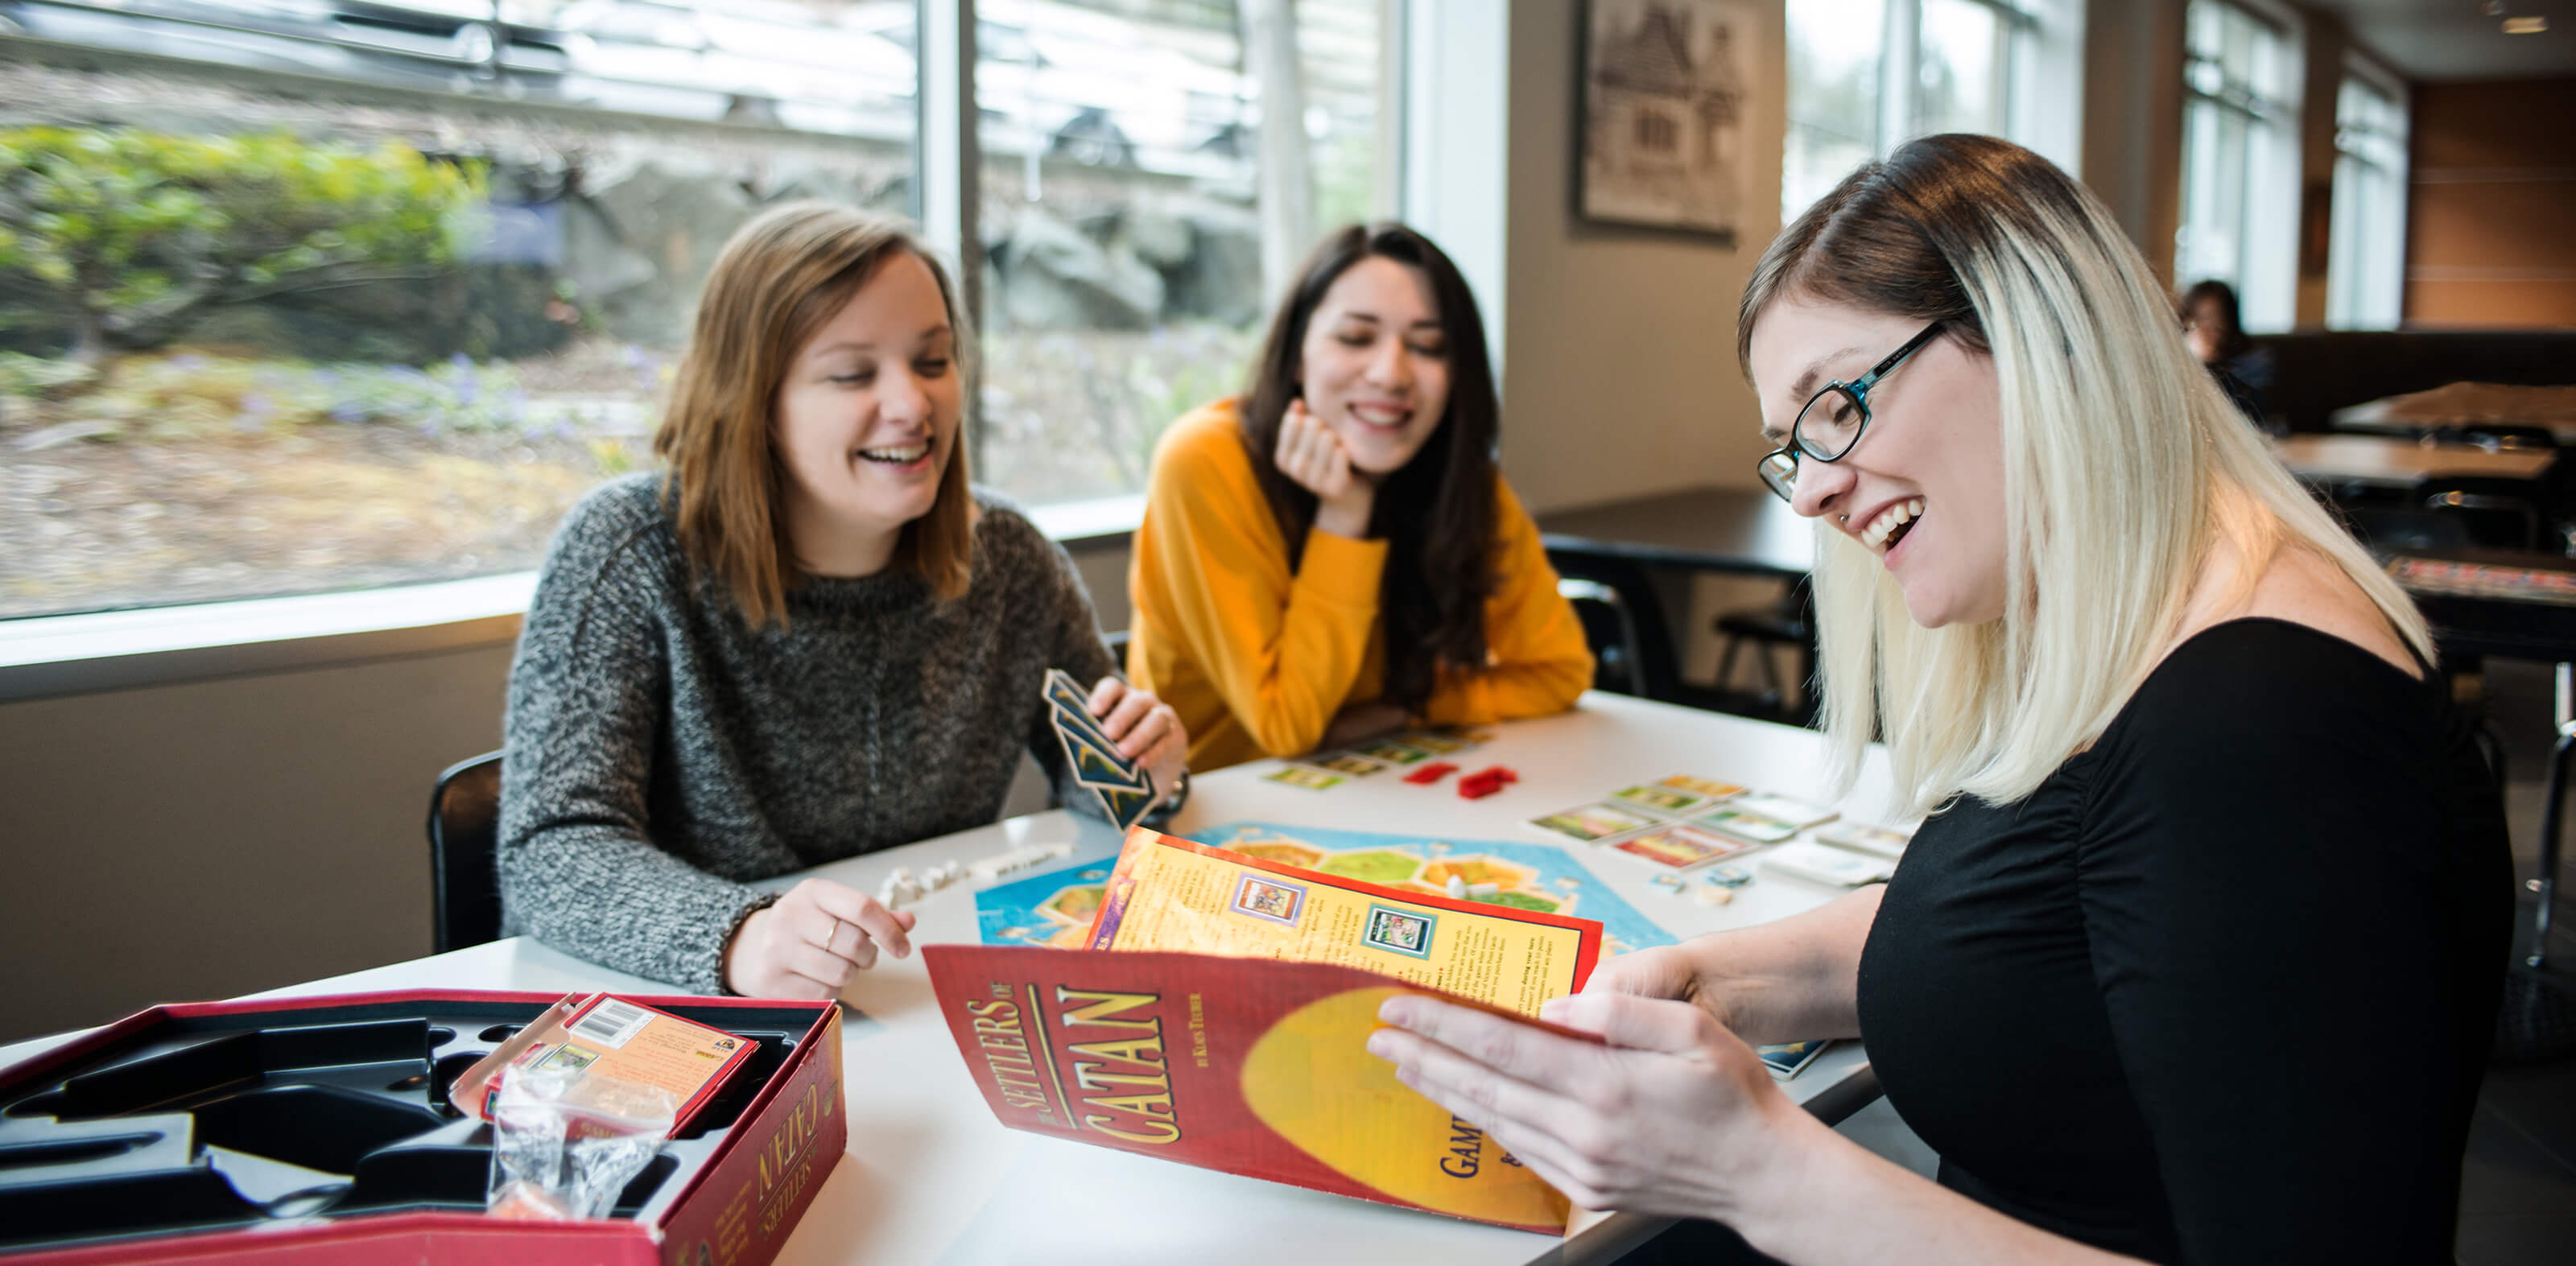 Students laughing as they play a board game in the DigiPen Cafe